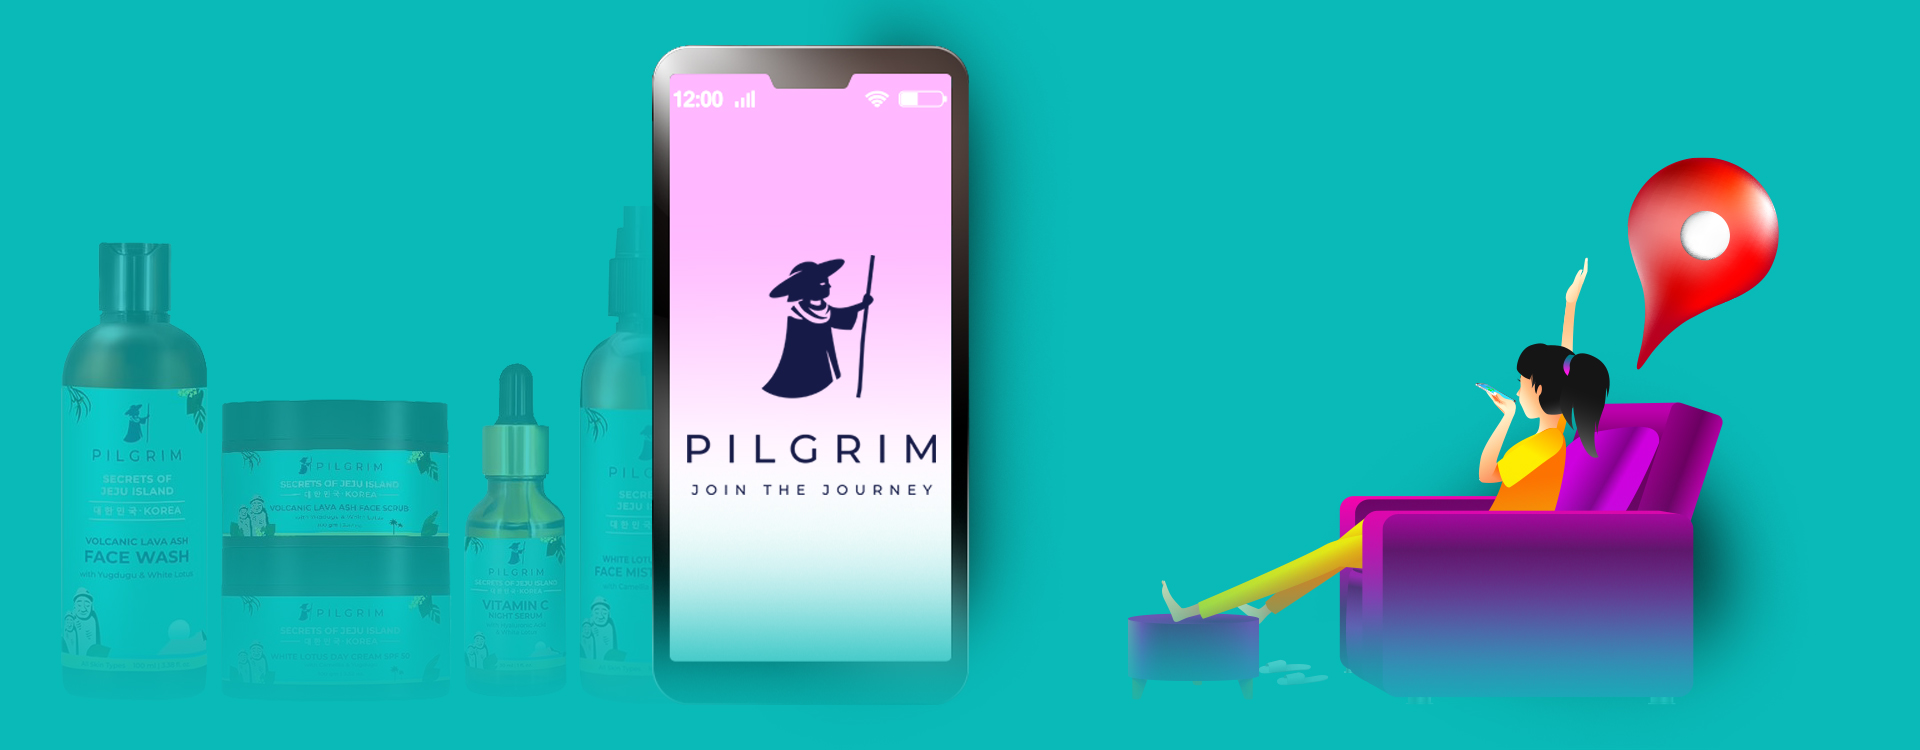 5 things that new businesses can learn from Pilgrim a newly launched D2C beauty brand in the pandemic.